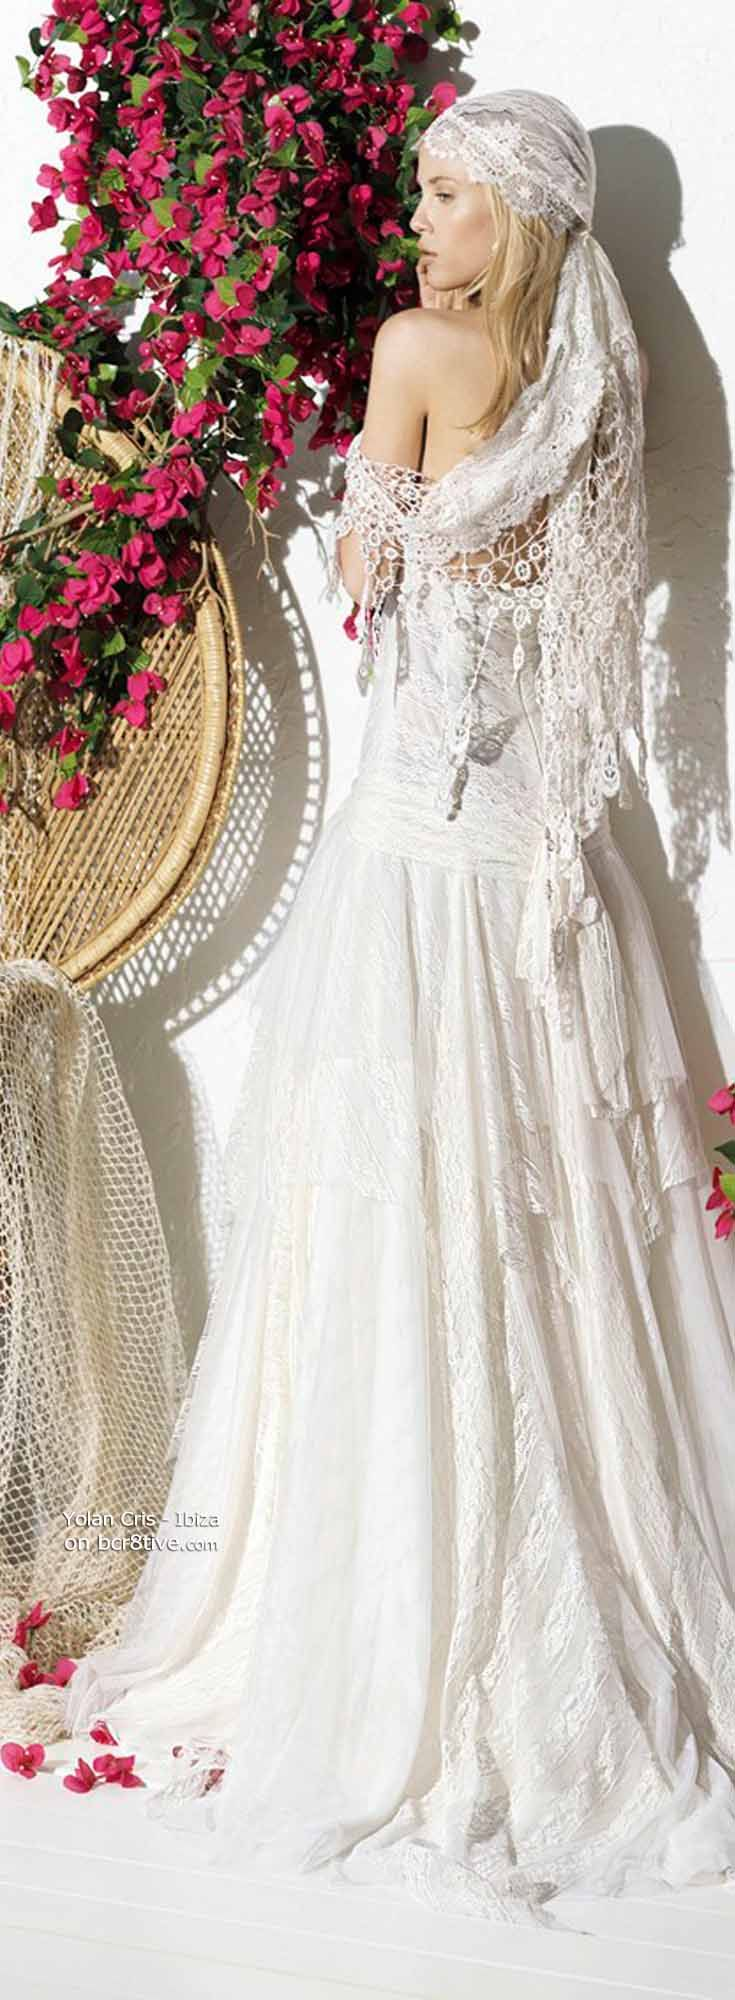 Best 100+ Wedding Ideas images on Pinterest | Costumes, Ball gown ...